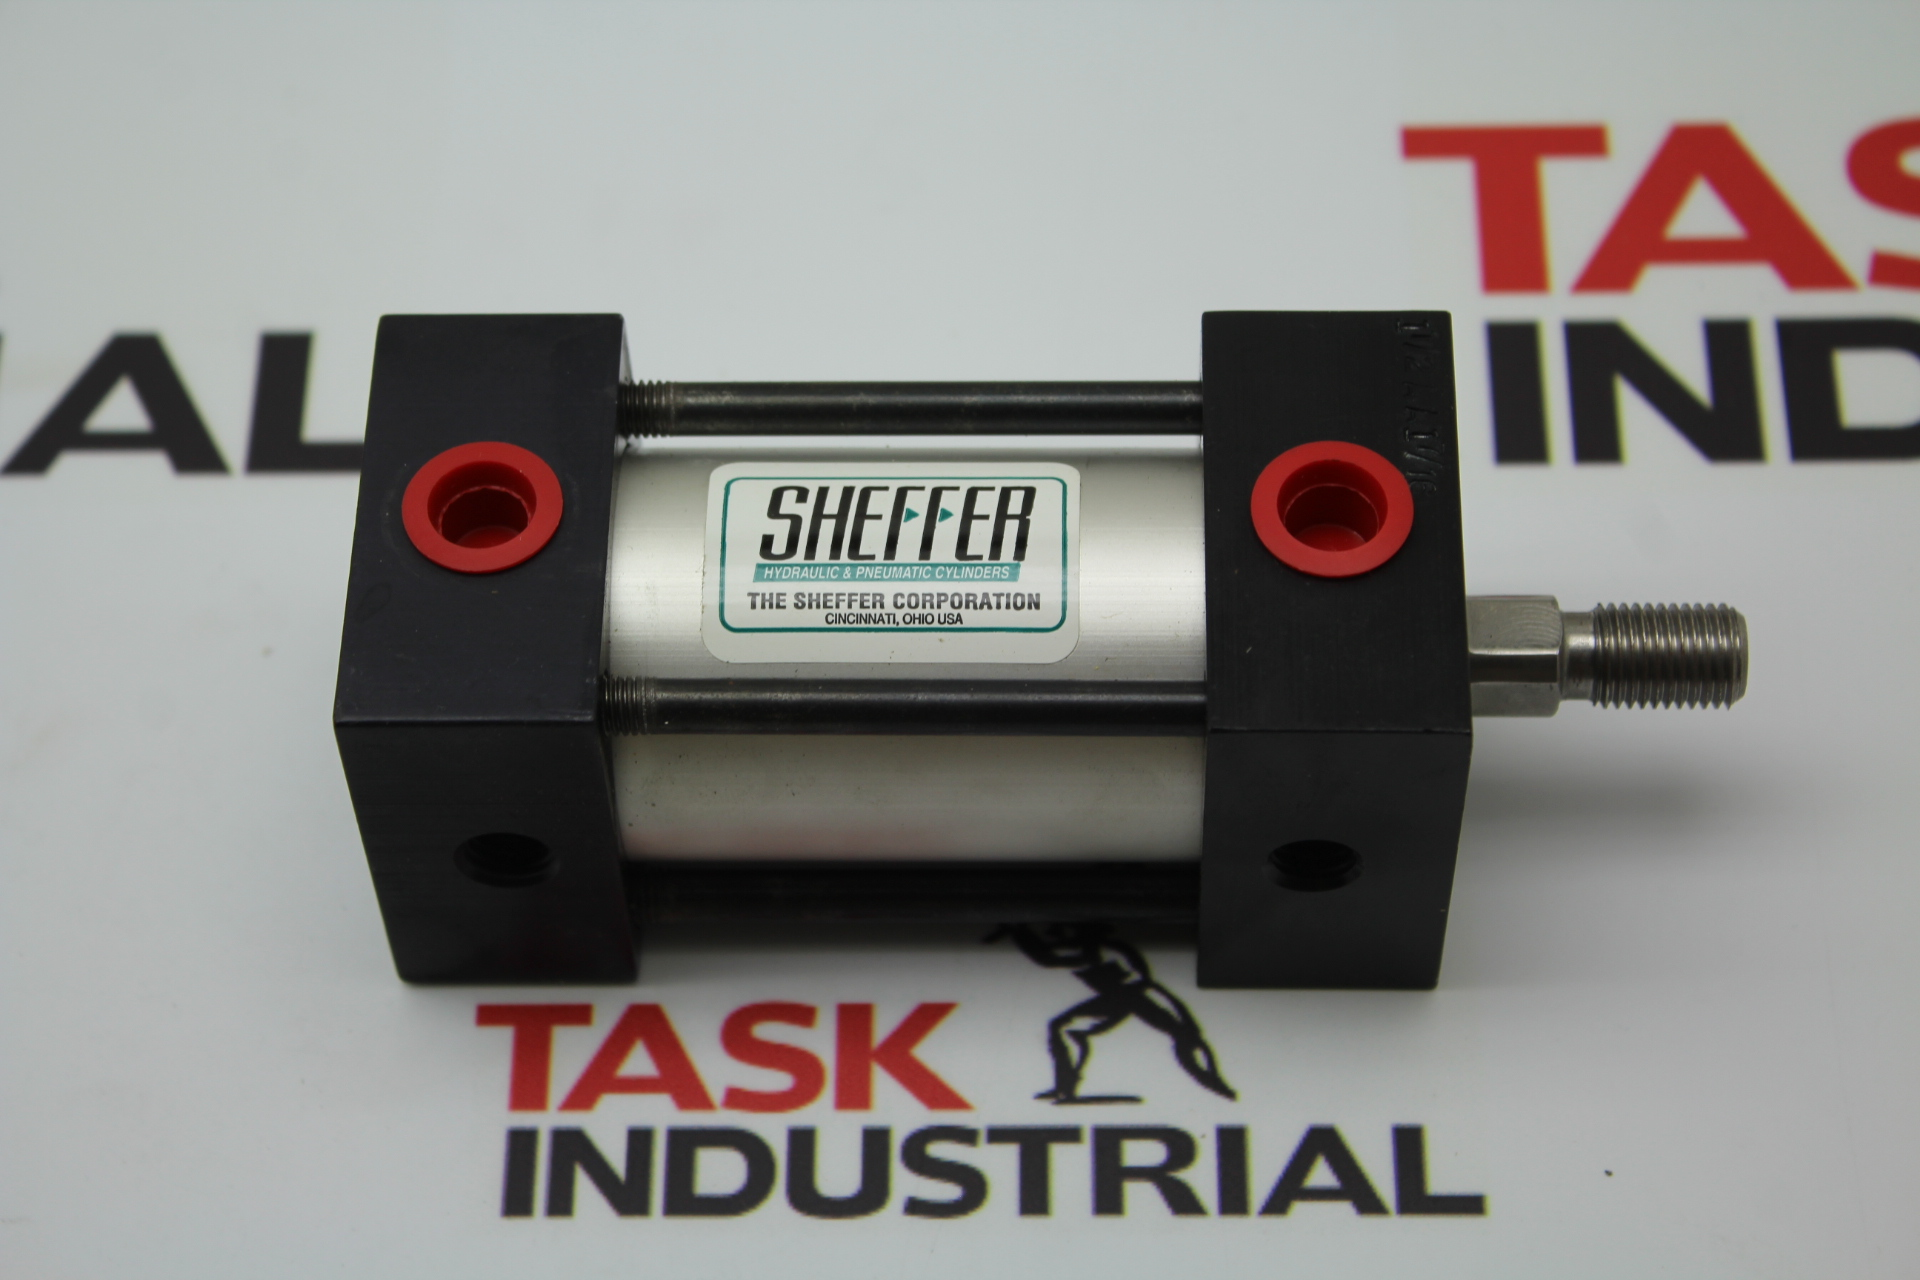 Sheffer Hydraulic & Pneumatic Cylinders 1-1/2AA1-7/16